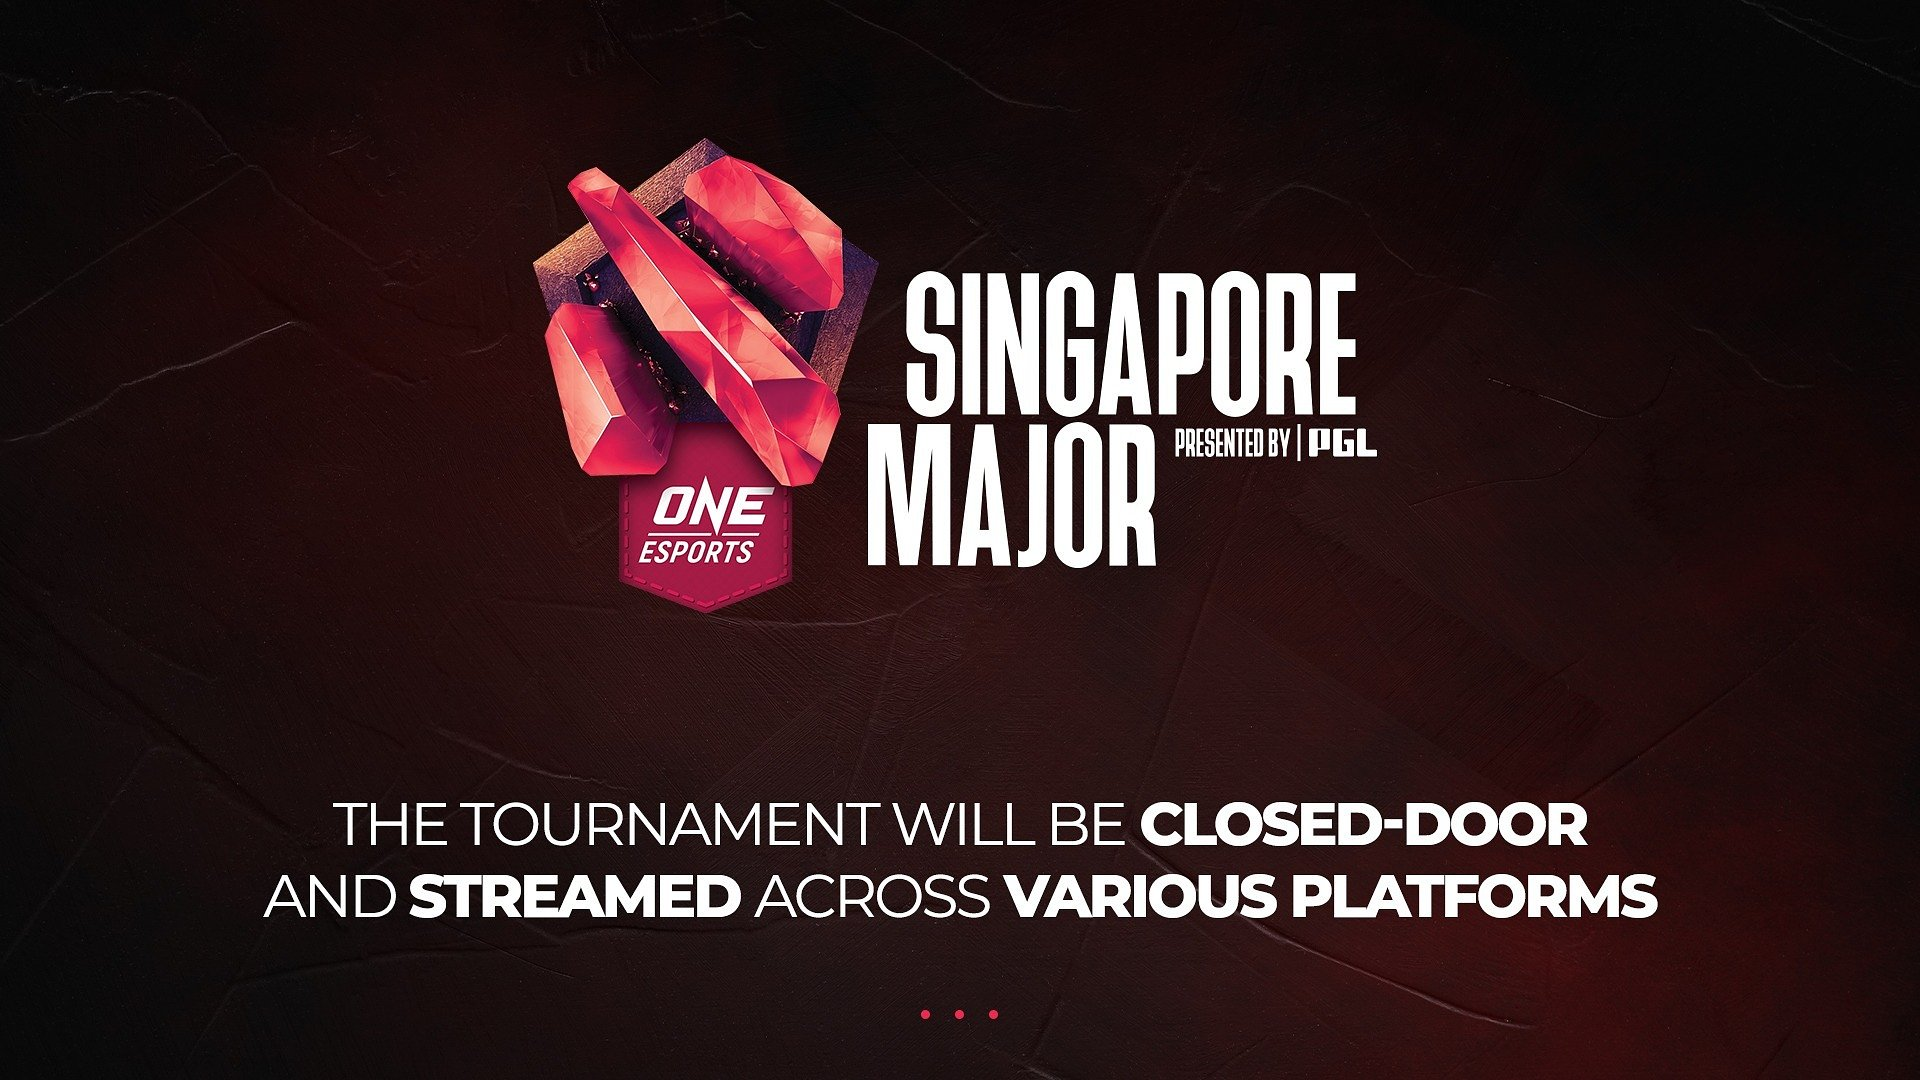 Singapore Major updates: talent lineup, qualified teams, and spectators information